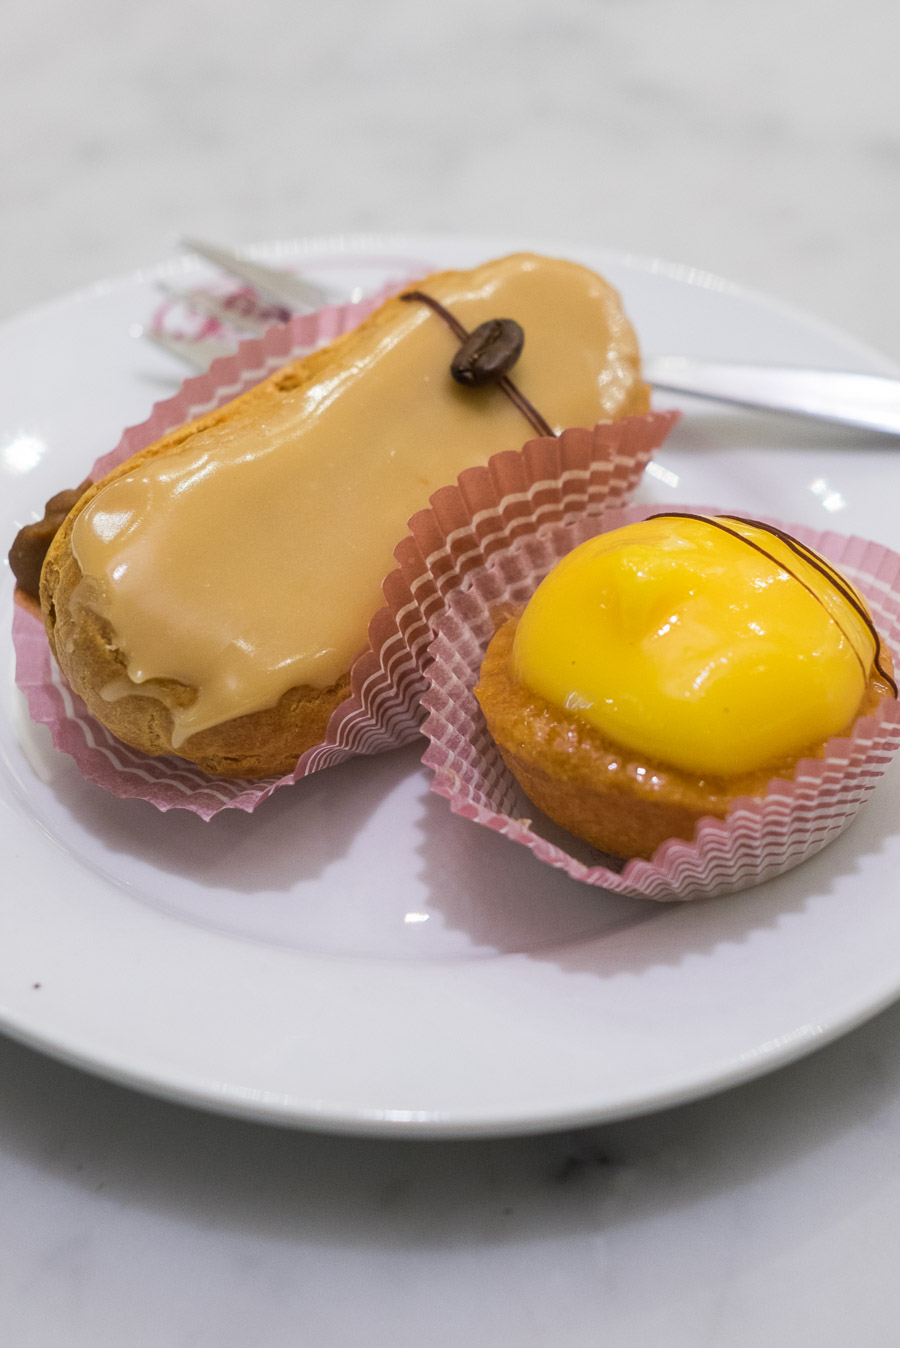 Coffee eclair and lemon tart, Brunetti